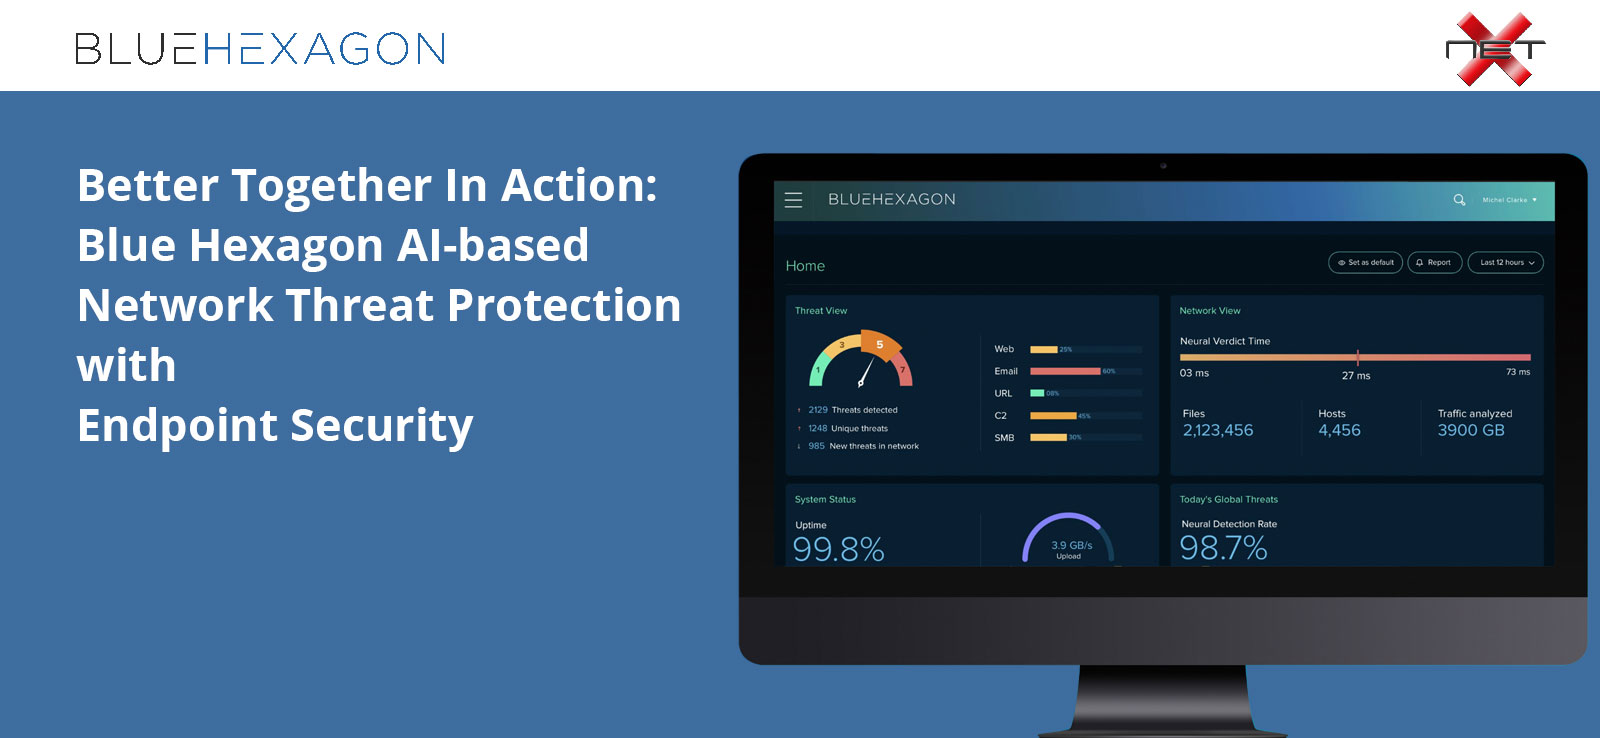 Blue Hexagon Webinar Network Threat Protection